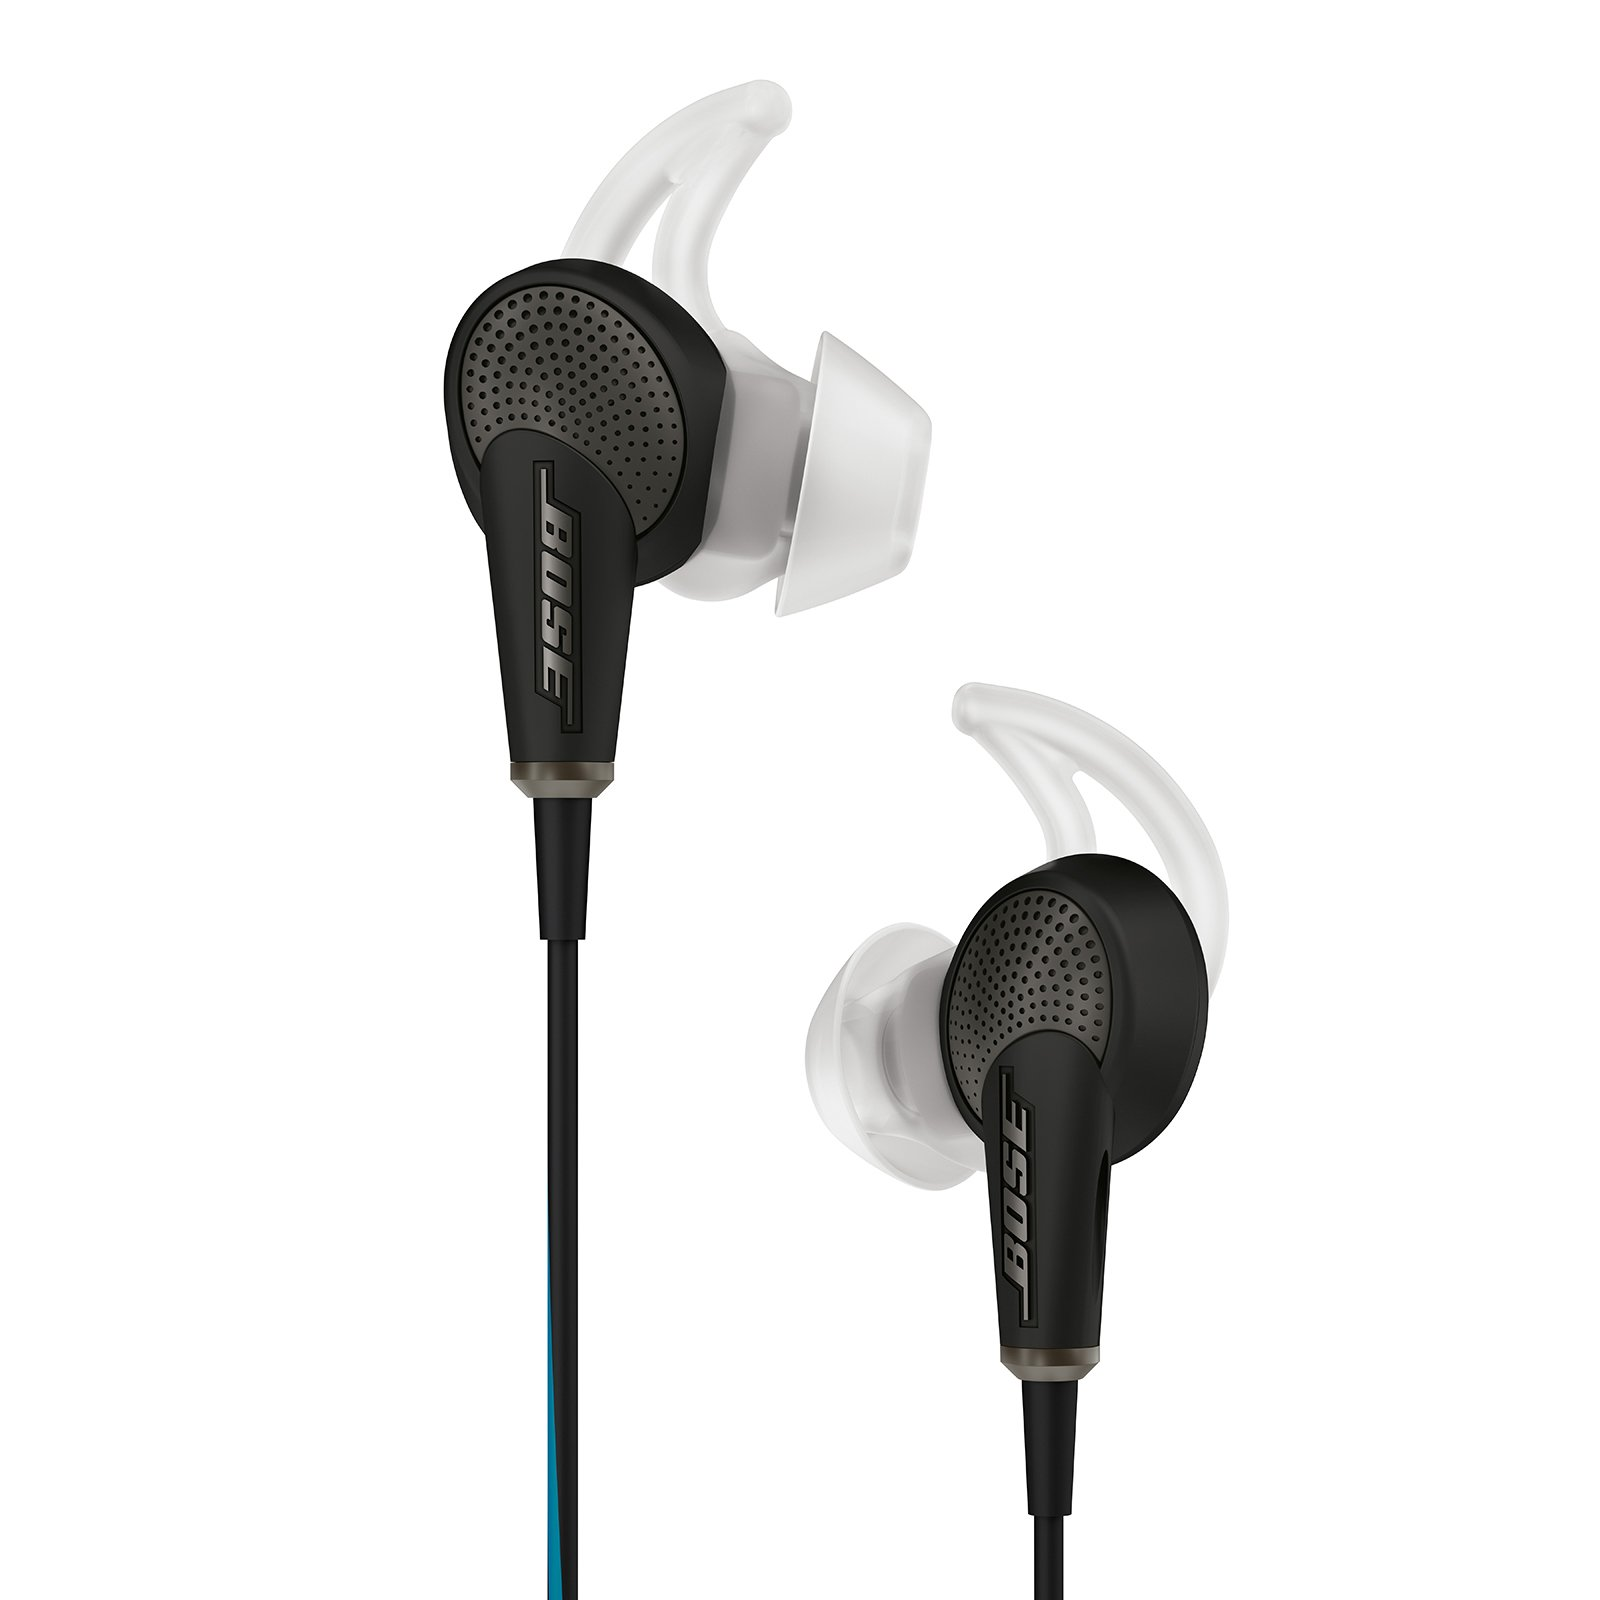 Bose QuietComfort 20 Acoustic Noise Cancelling Headphones, Apple Devices, Black by Bose